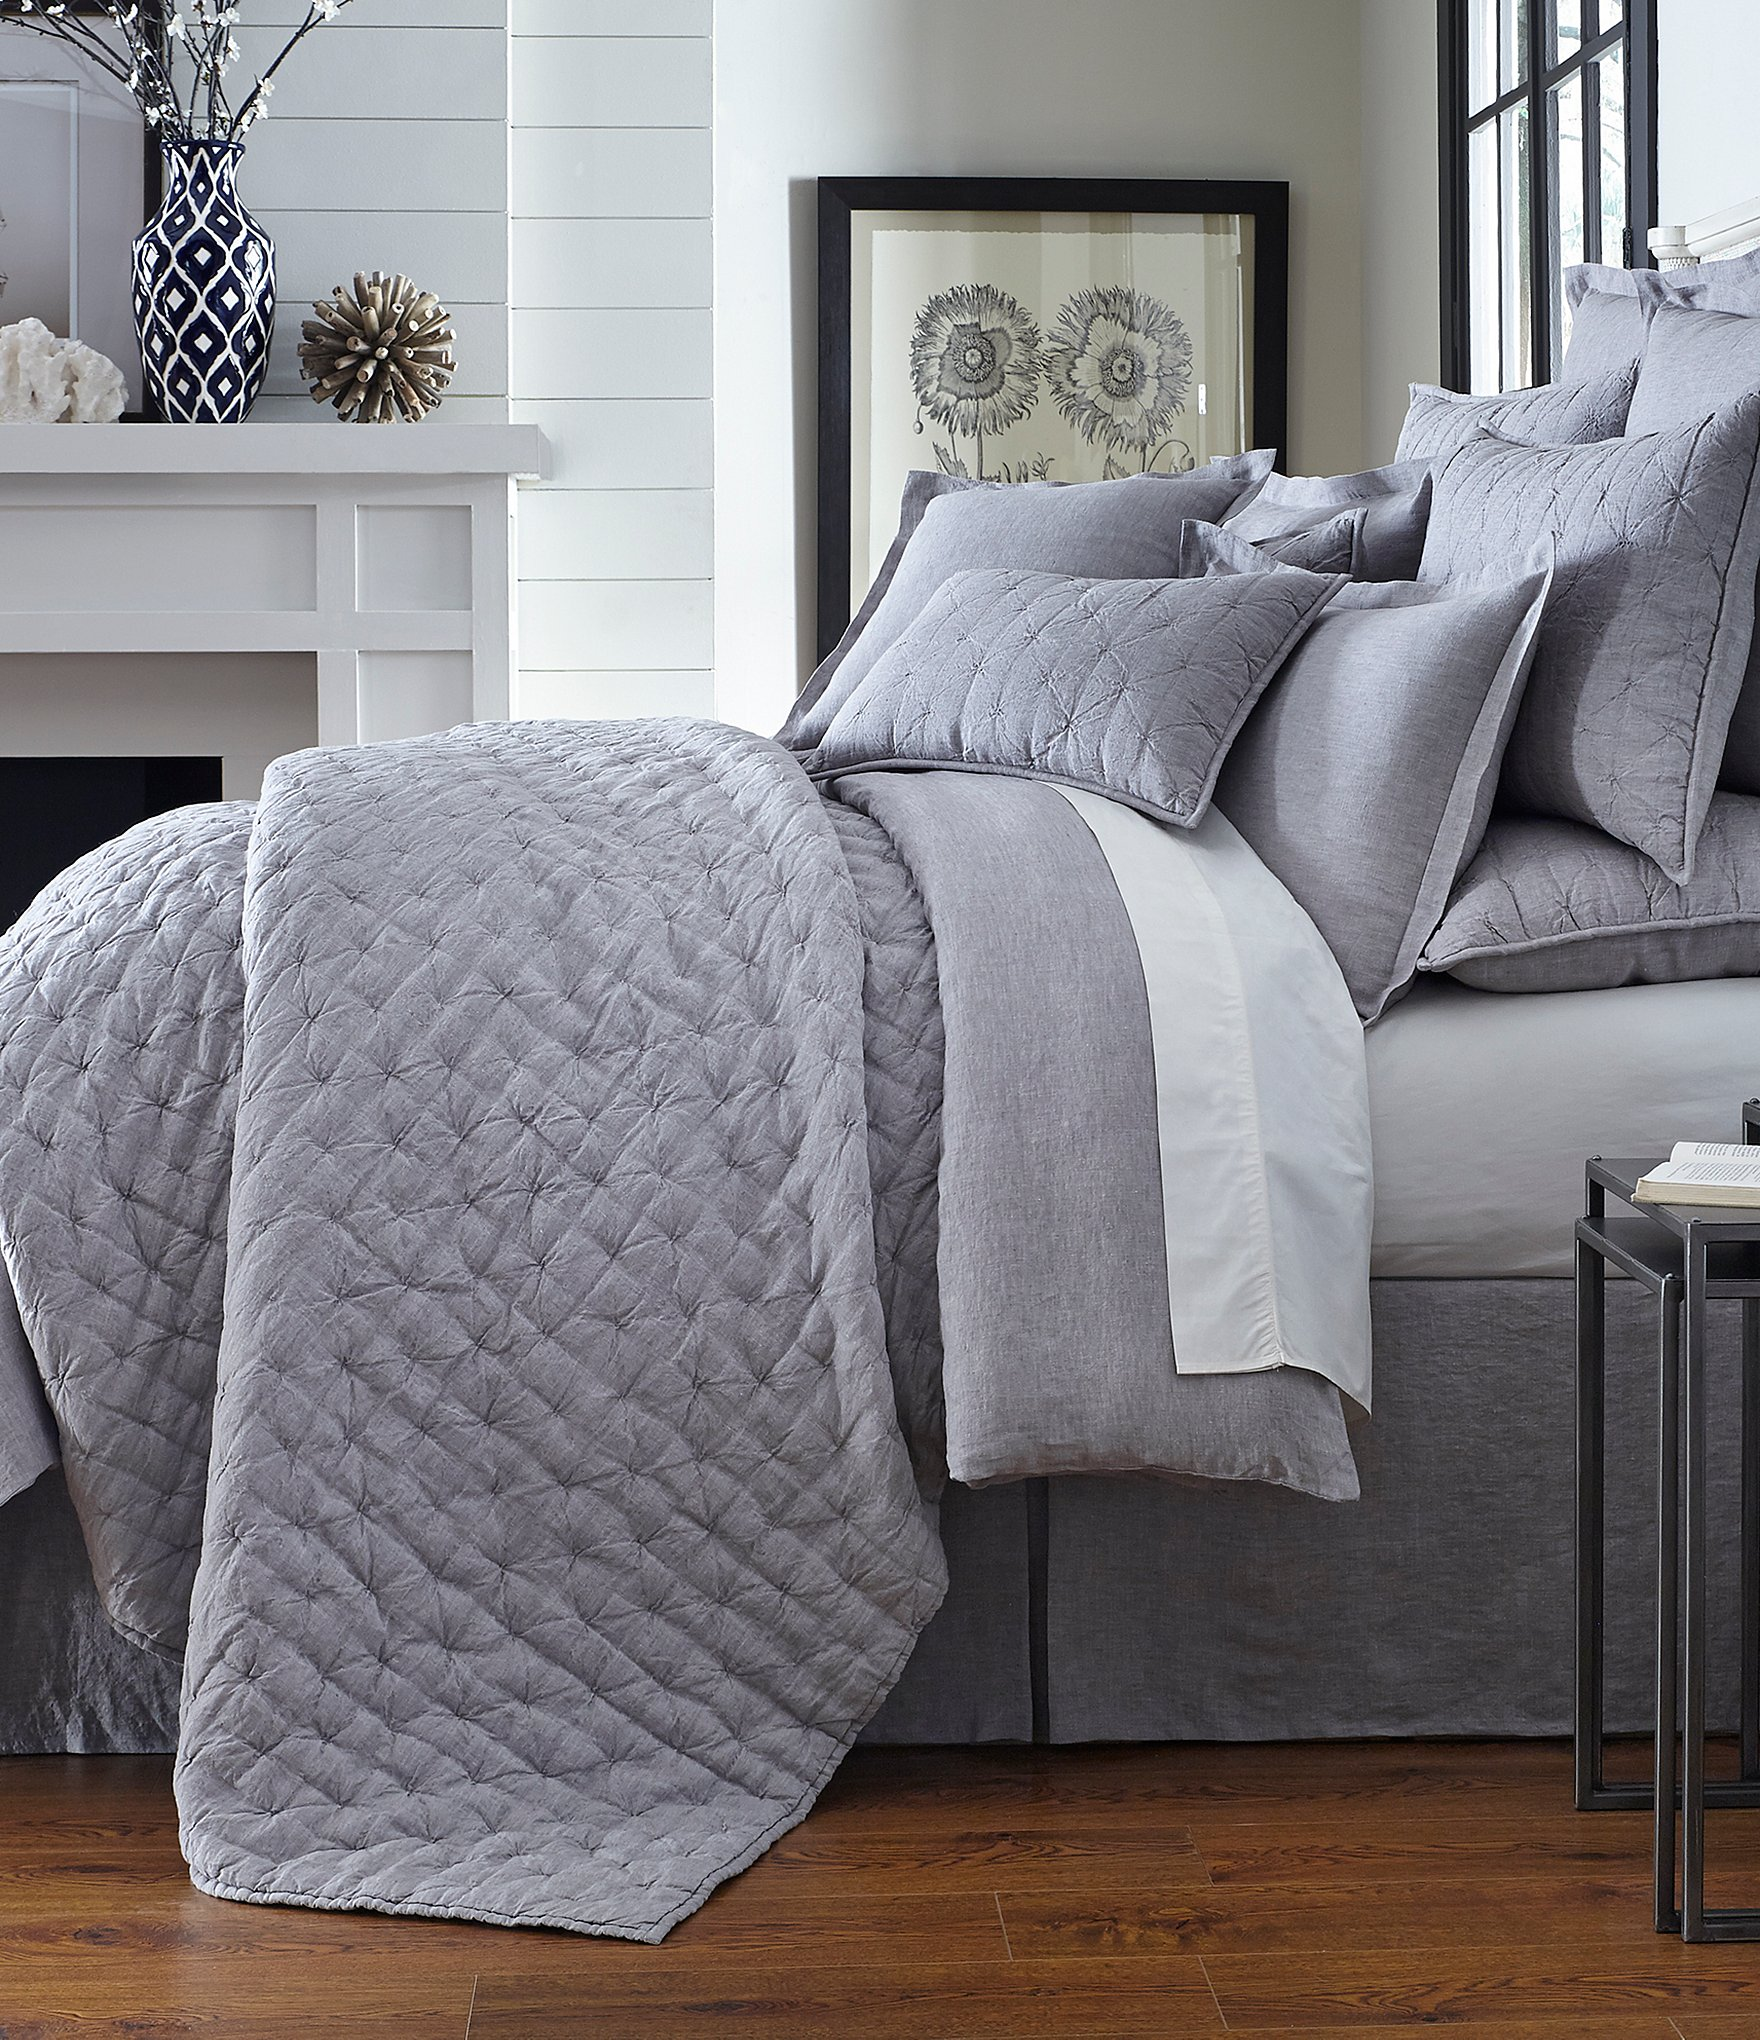 Southern Living Heirloom Linen Quilt Dillard S